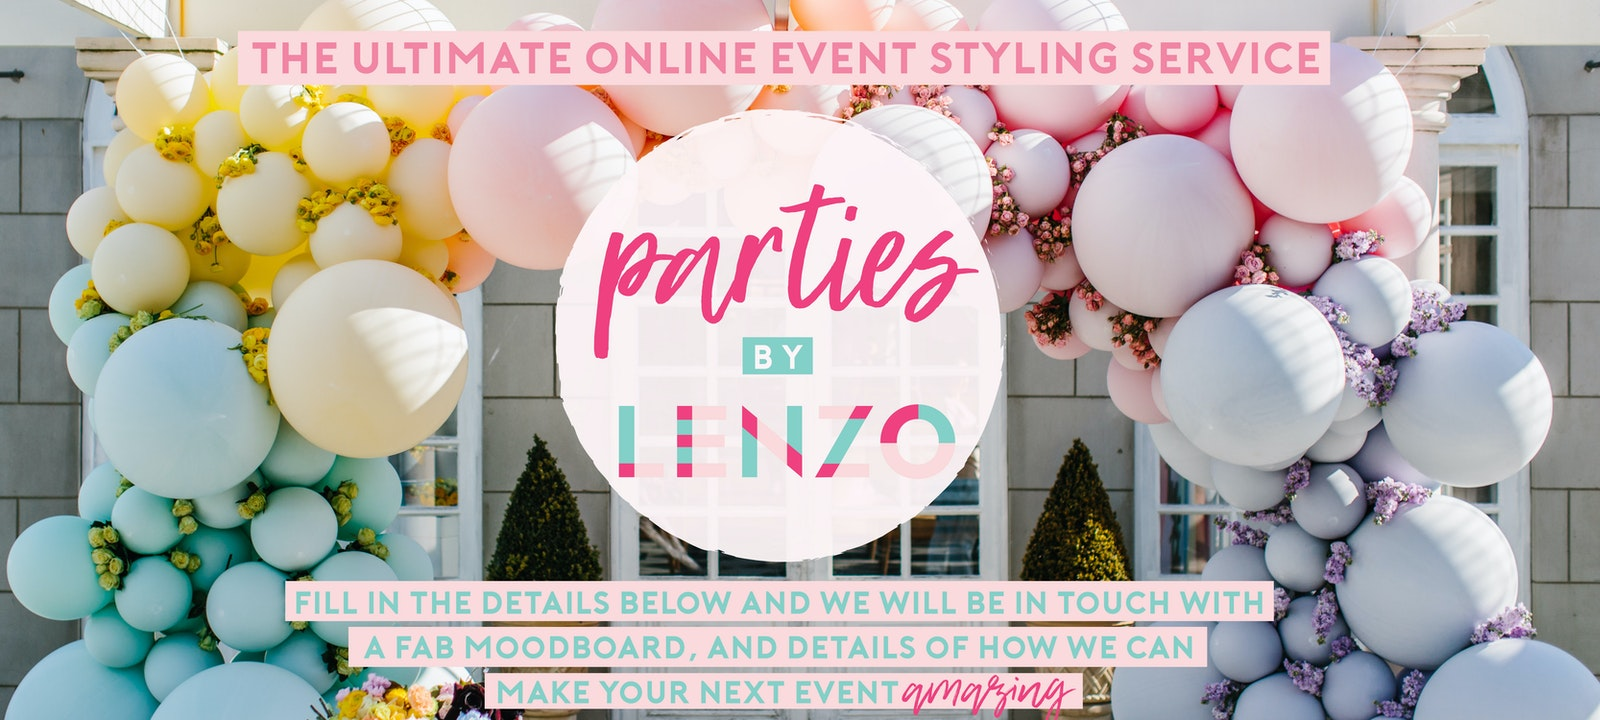 Parties by LENZO   Event Styling Assistance